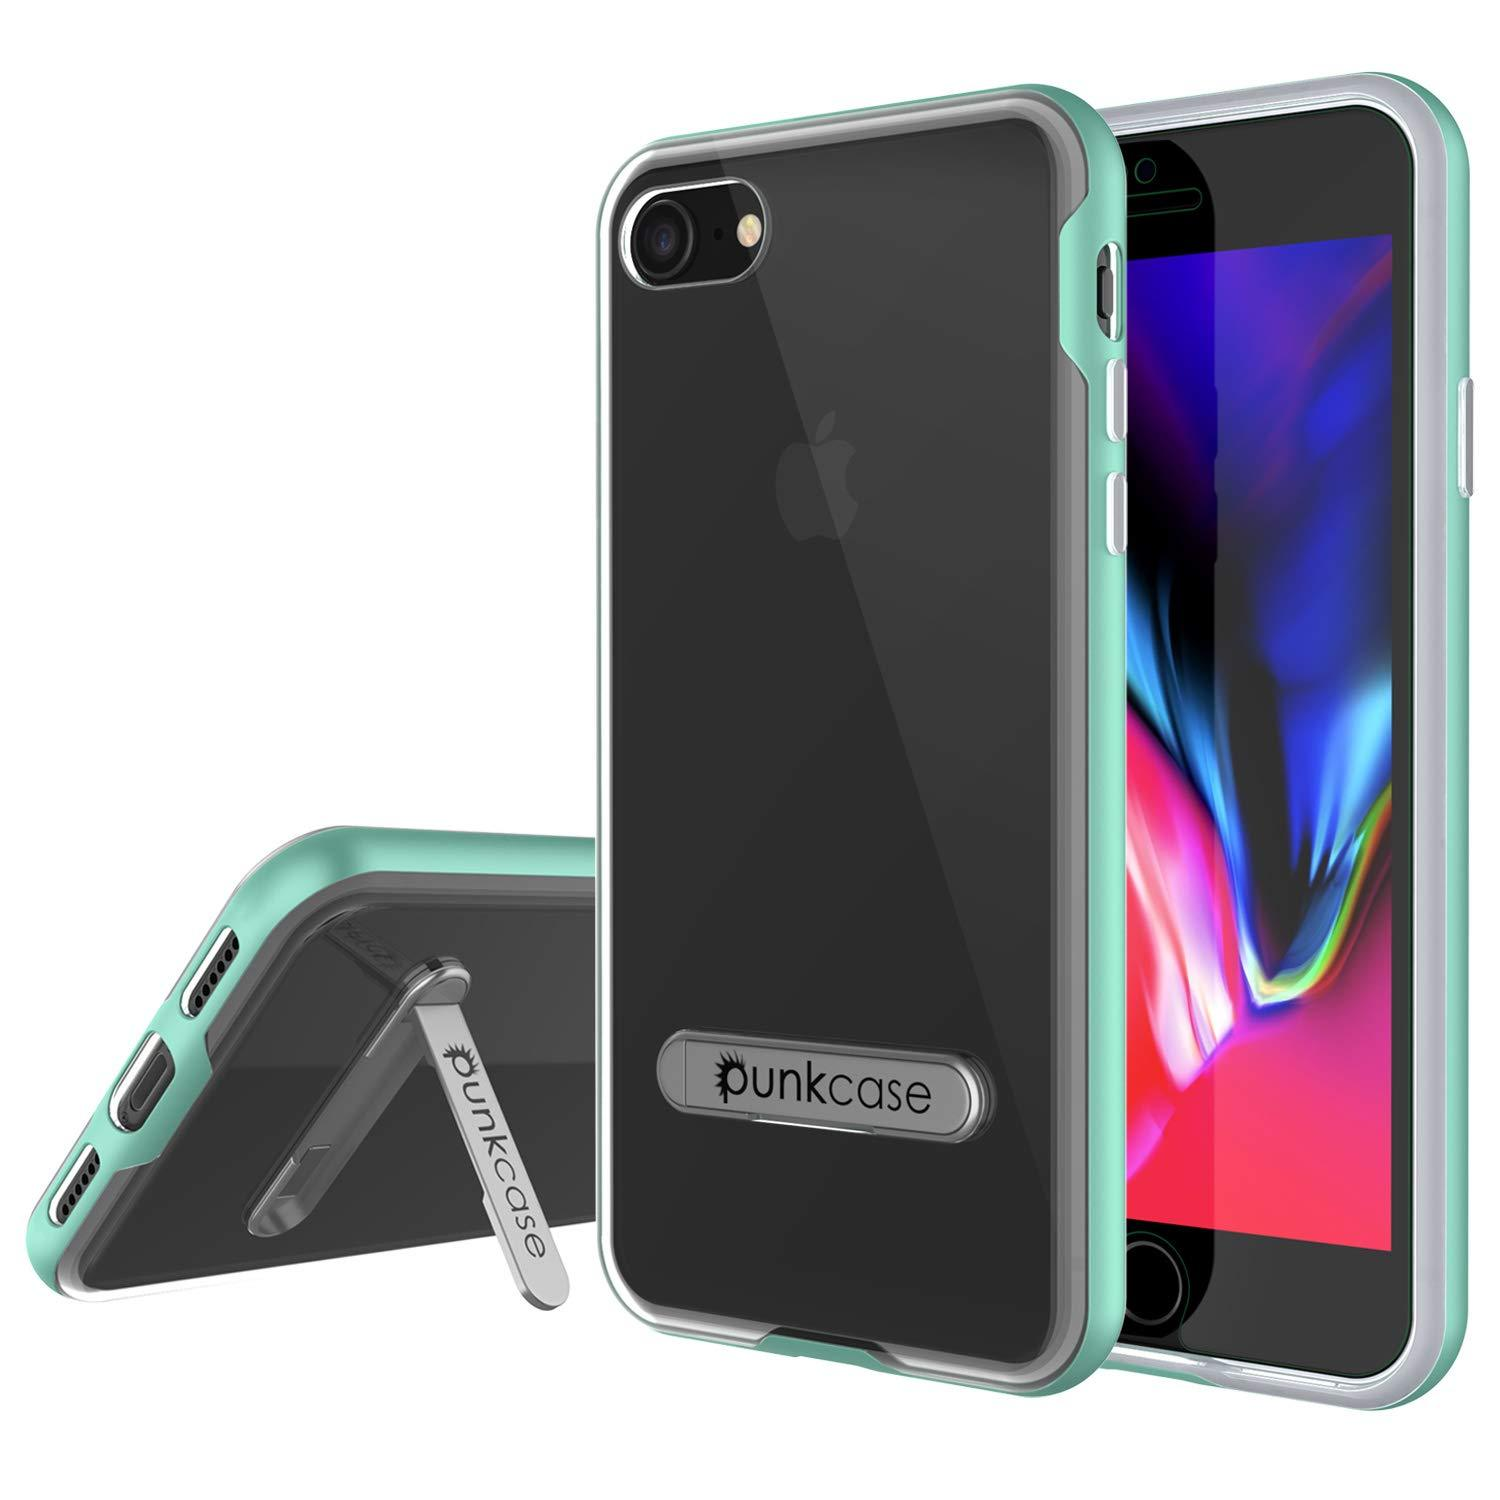 "PunkCase iPhone SE (4.7"") Lucid 3.0 Screen Protector W/ Anti-Shock Case [Teal]"